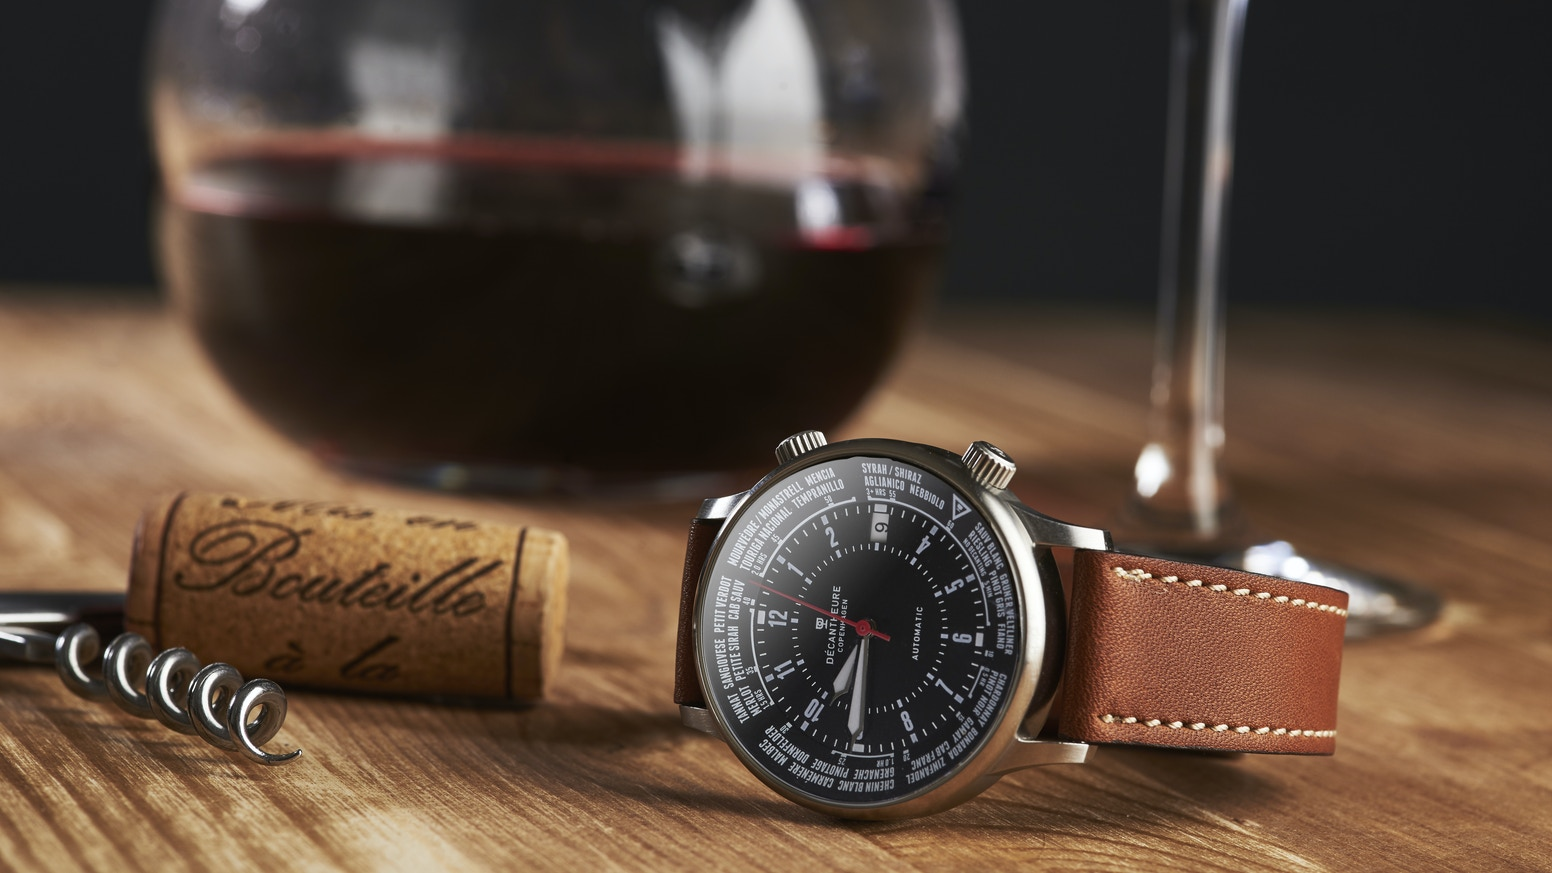 The art of decanting wine just got easier with Décantheure: An ultra-niche automatic watch for passionate wine/watch lovers